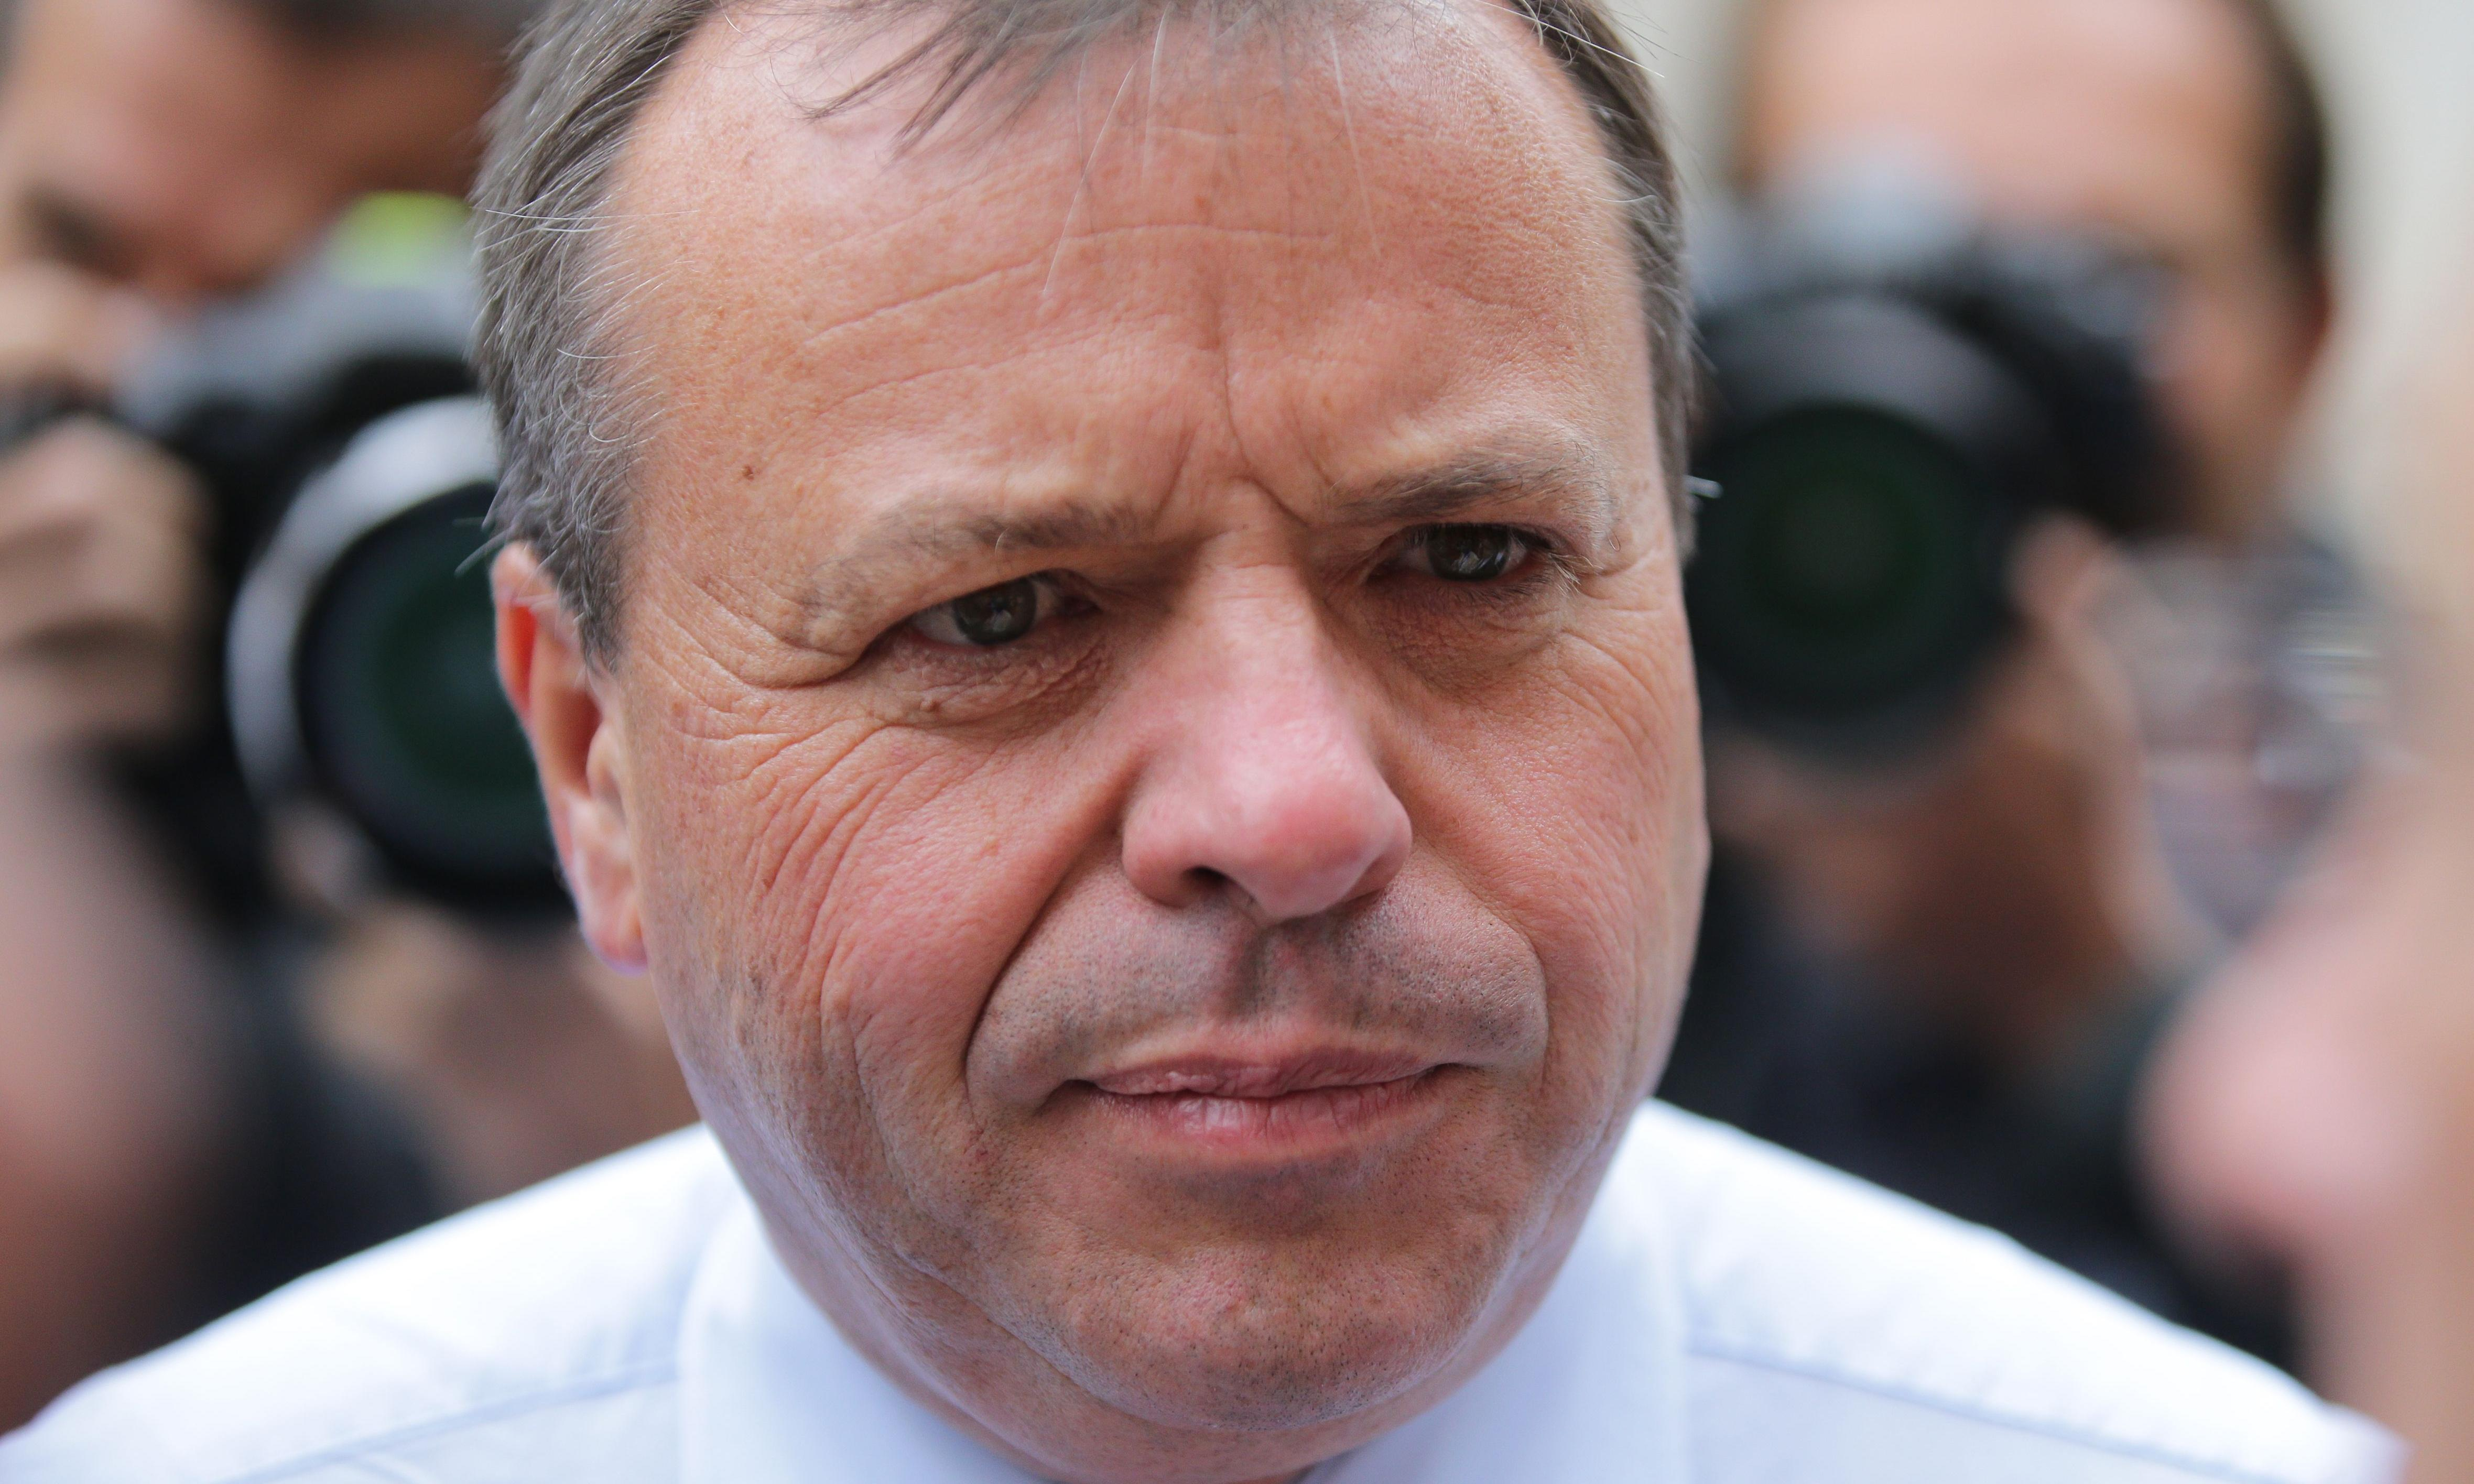 Brexit funder Arron Banks threatens Netflix over Great Hack documentary